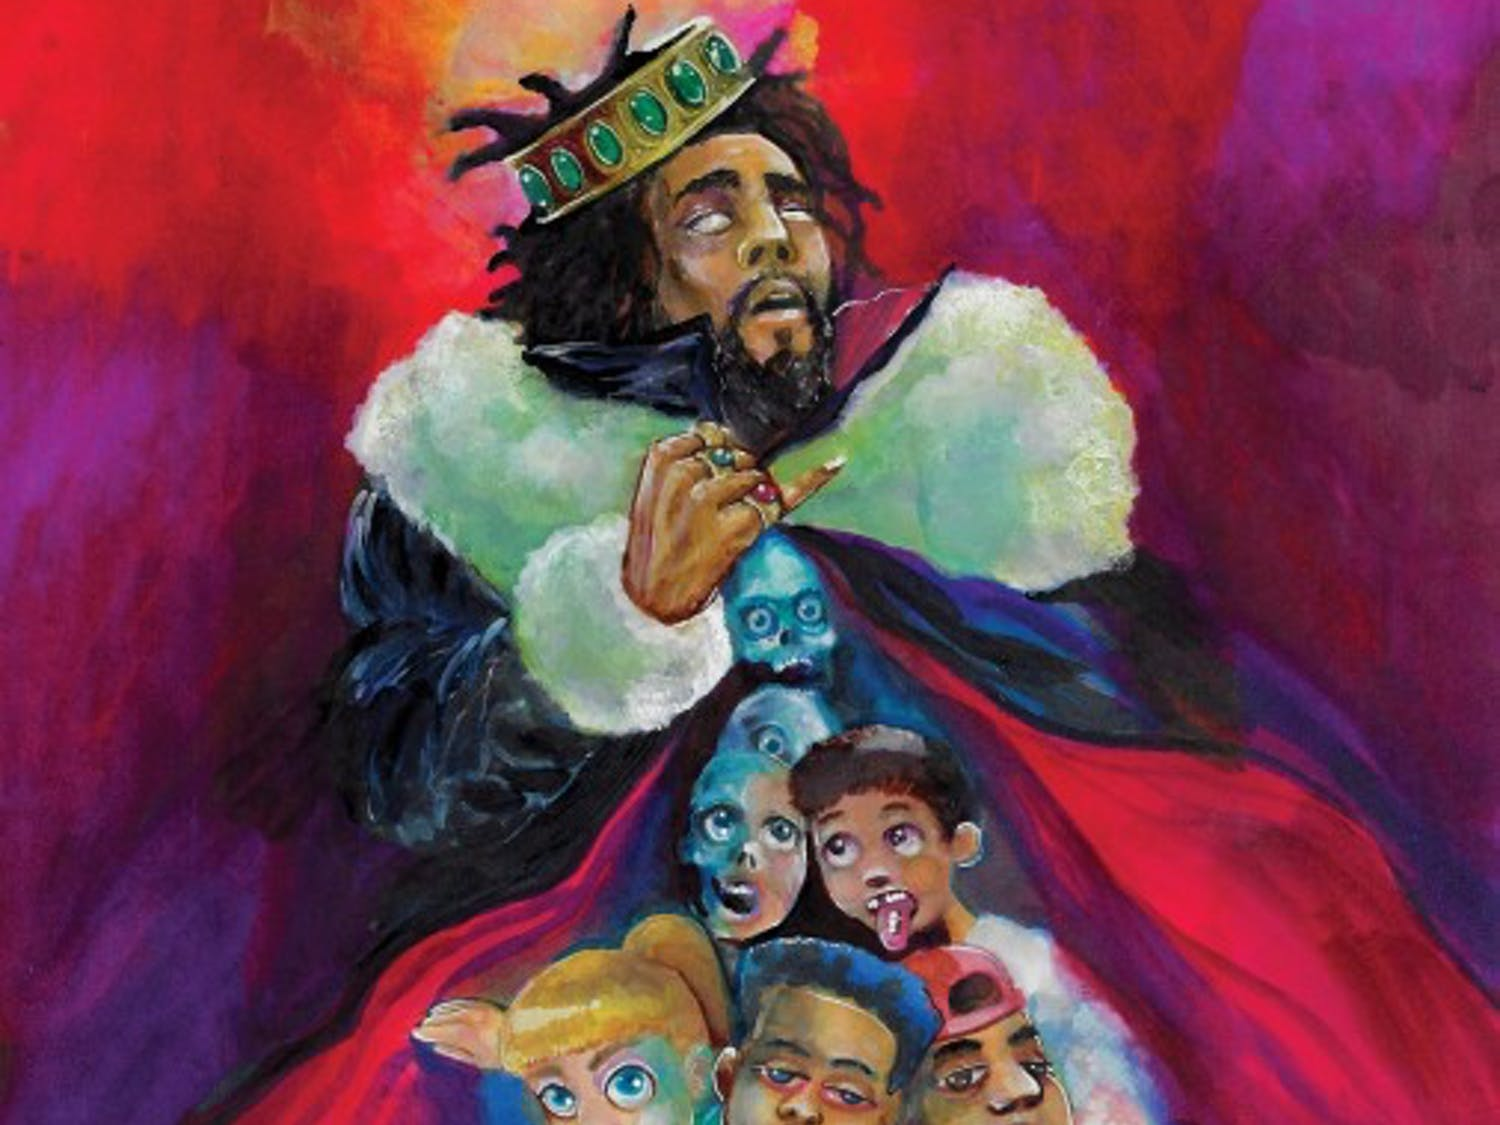 """On his fifth album, J. Cole is taking a leap towards a prolific stature as he critiques his peers, surroundings and the culture of drug use around him on """"KOD."""""""